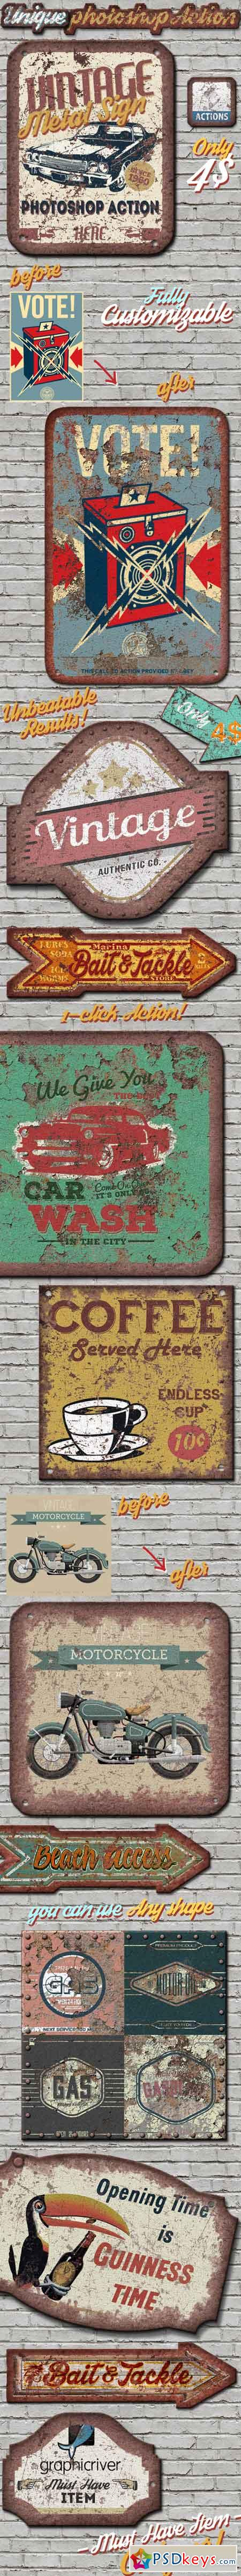 Vintage Metal Sign Photoshop Action 13296572